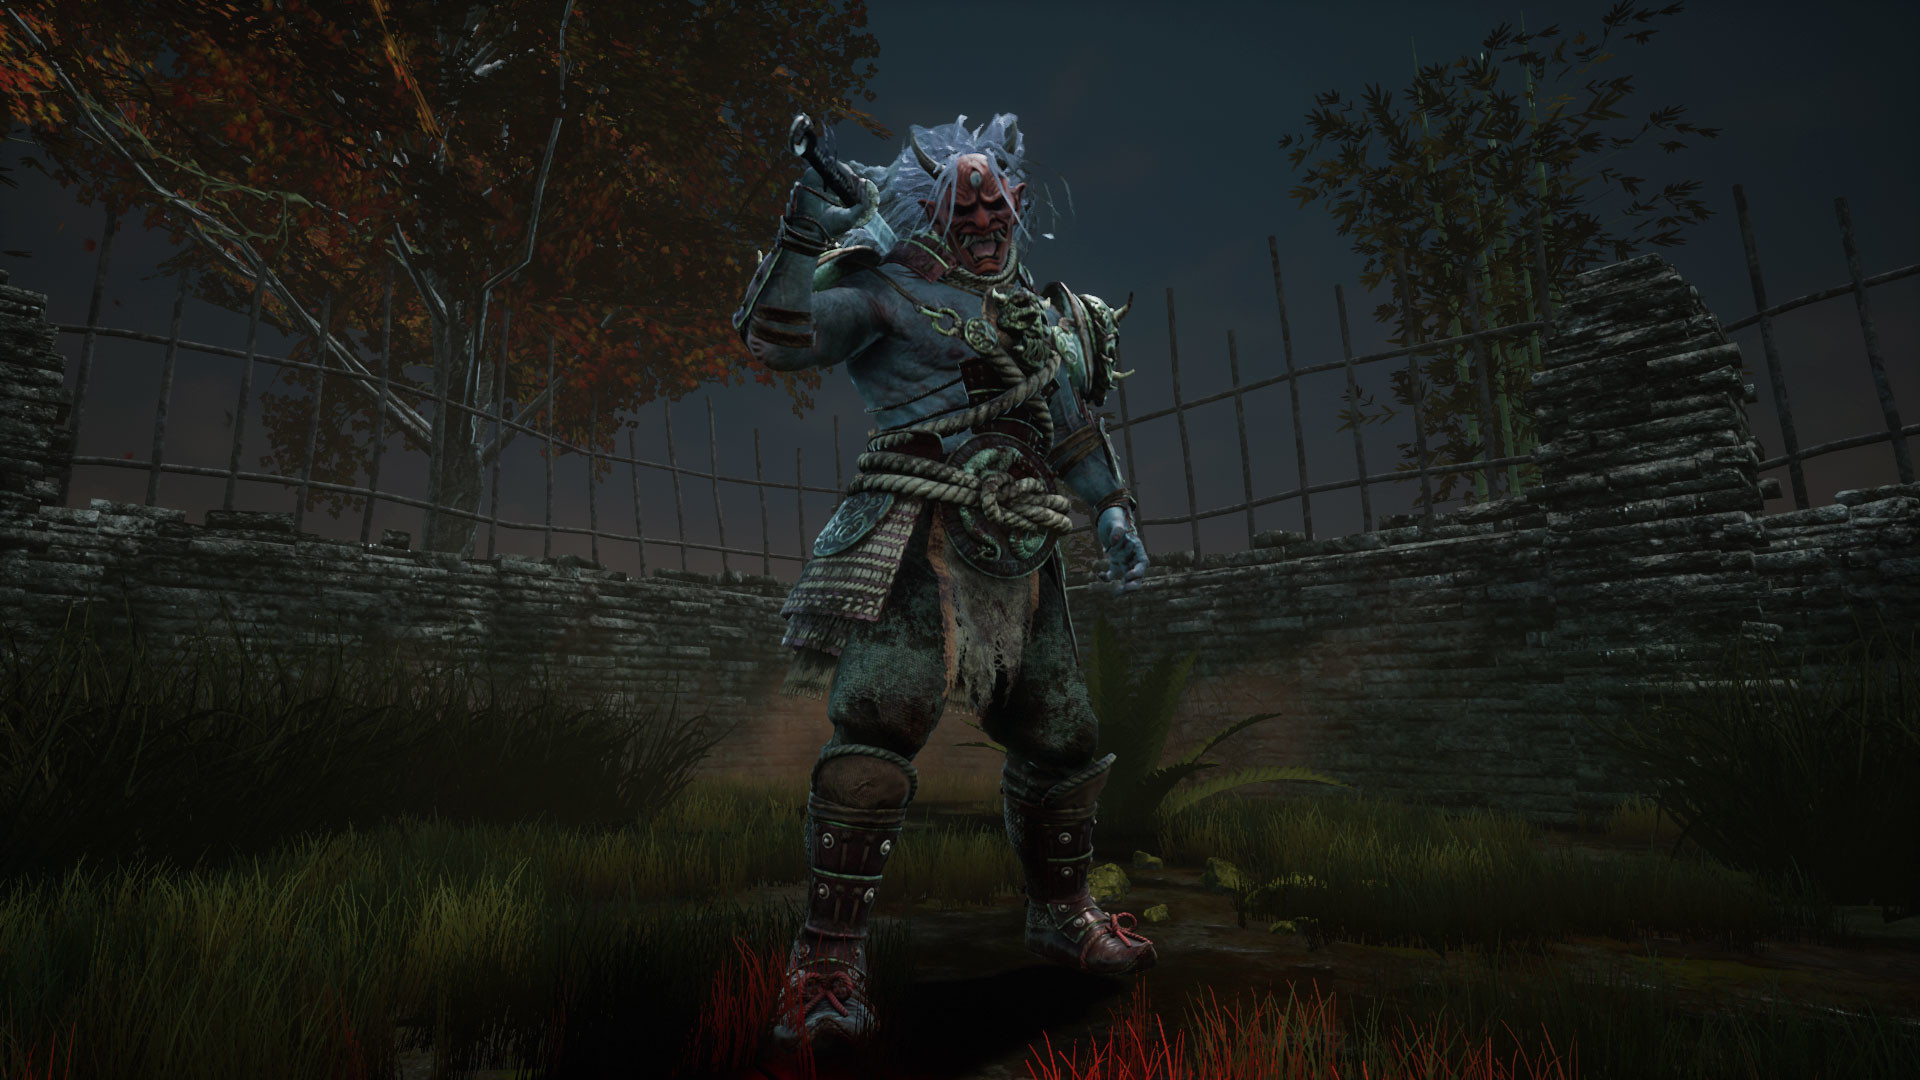 KHAiHOM.com - Dead by Daylight - Cursed Legacy Chapter